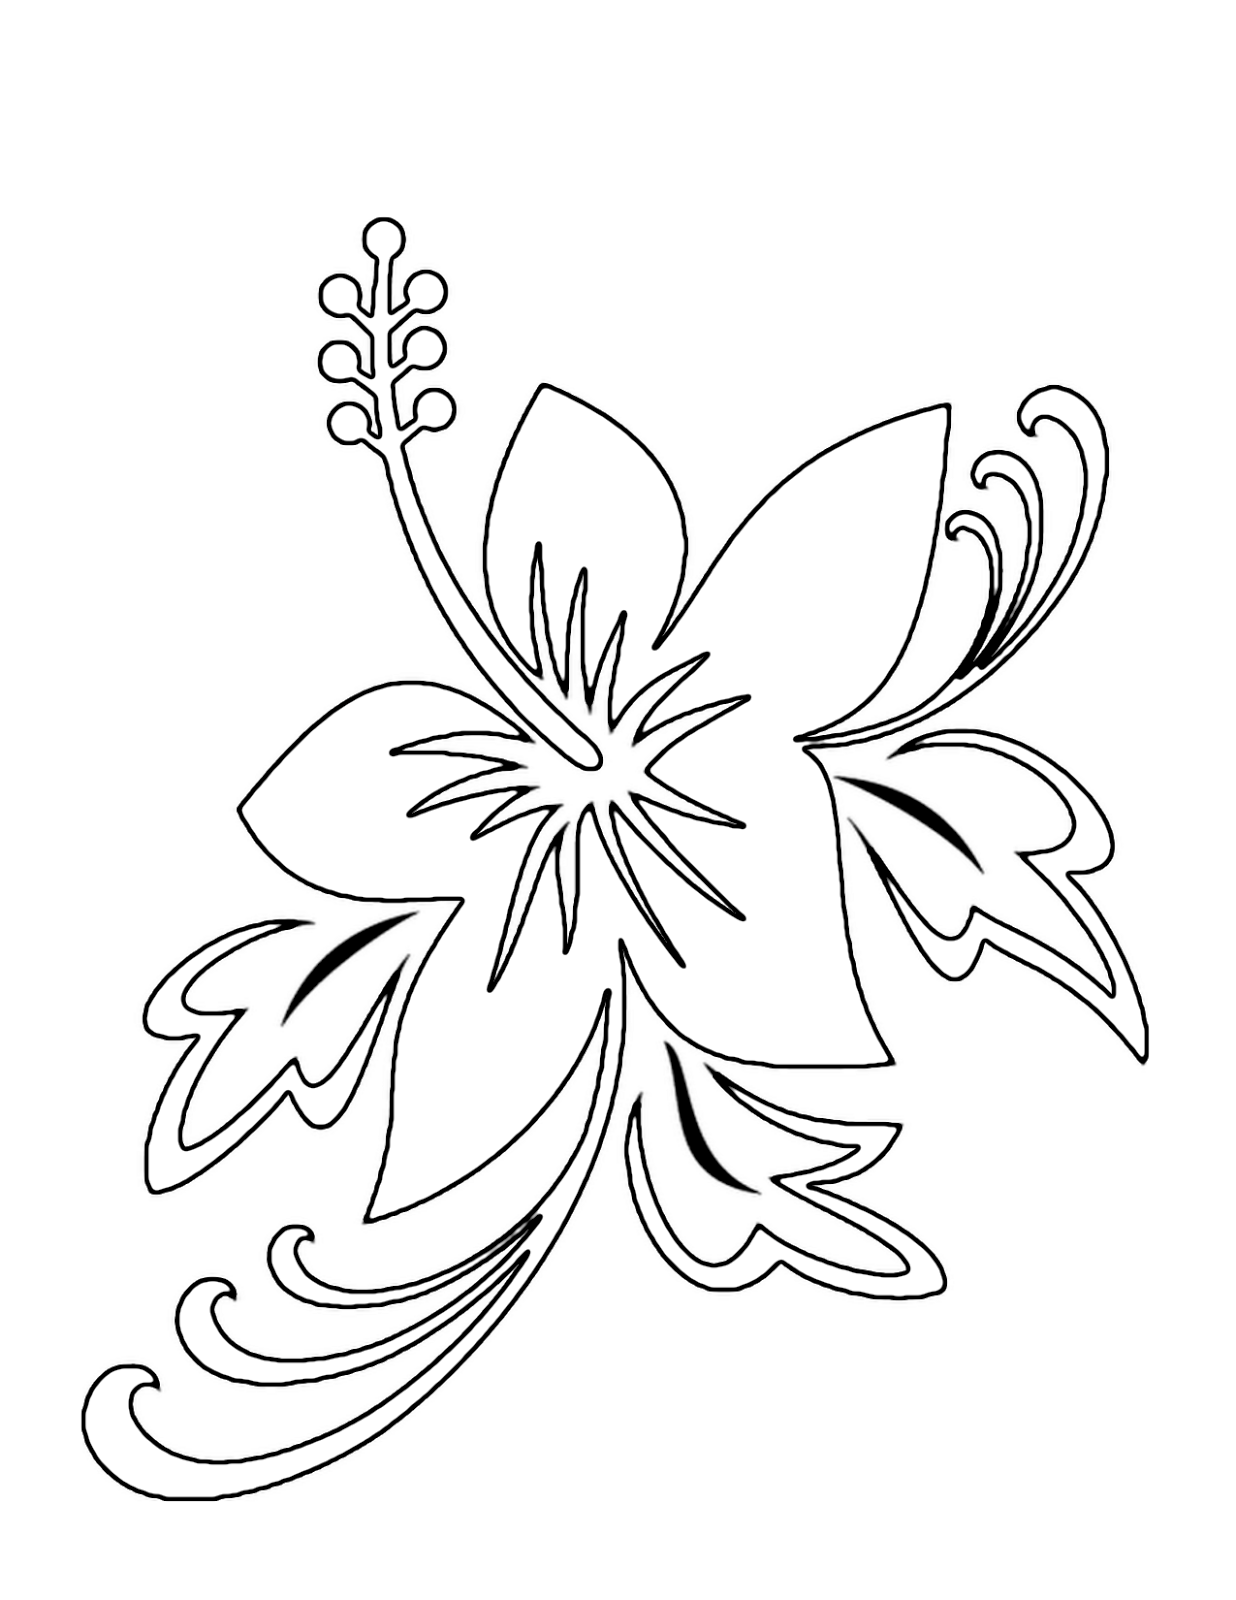 FLOWER coloring pages 46 free online coloring books  - flower coloring pages free to print